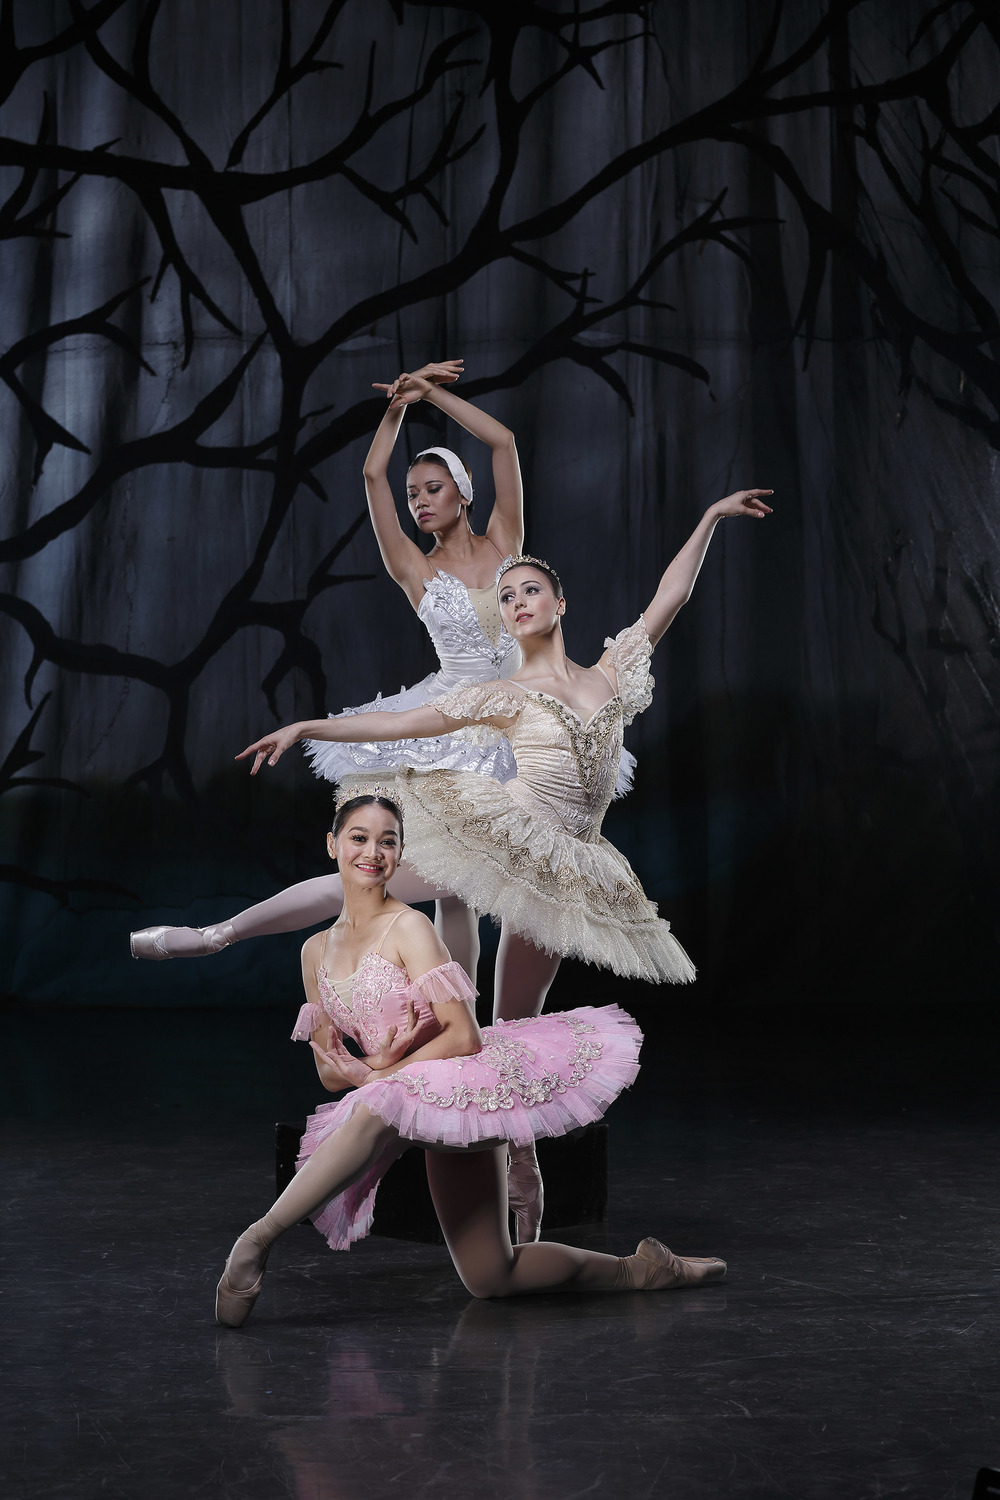 The most romantic ballets take center stage in    The Swan, The Fairy and The Princess    with (from top) soloist Abigail Oliveiro, and principal dancers Katherine Barkman and Dawna Mangahas.